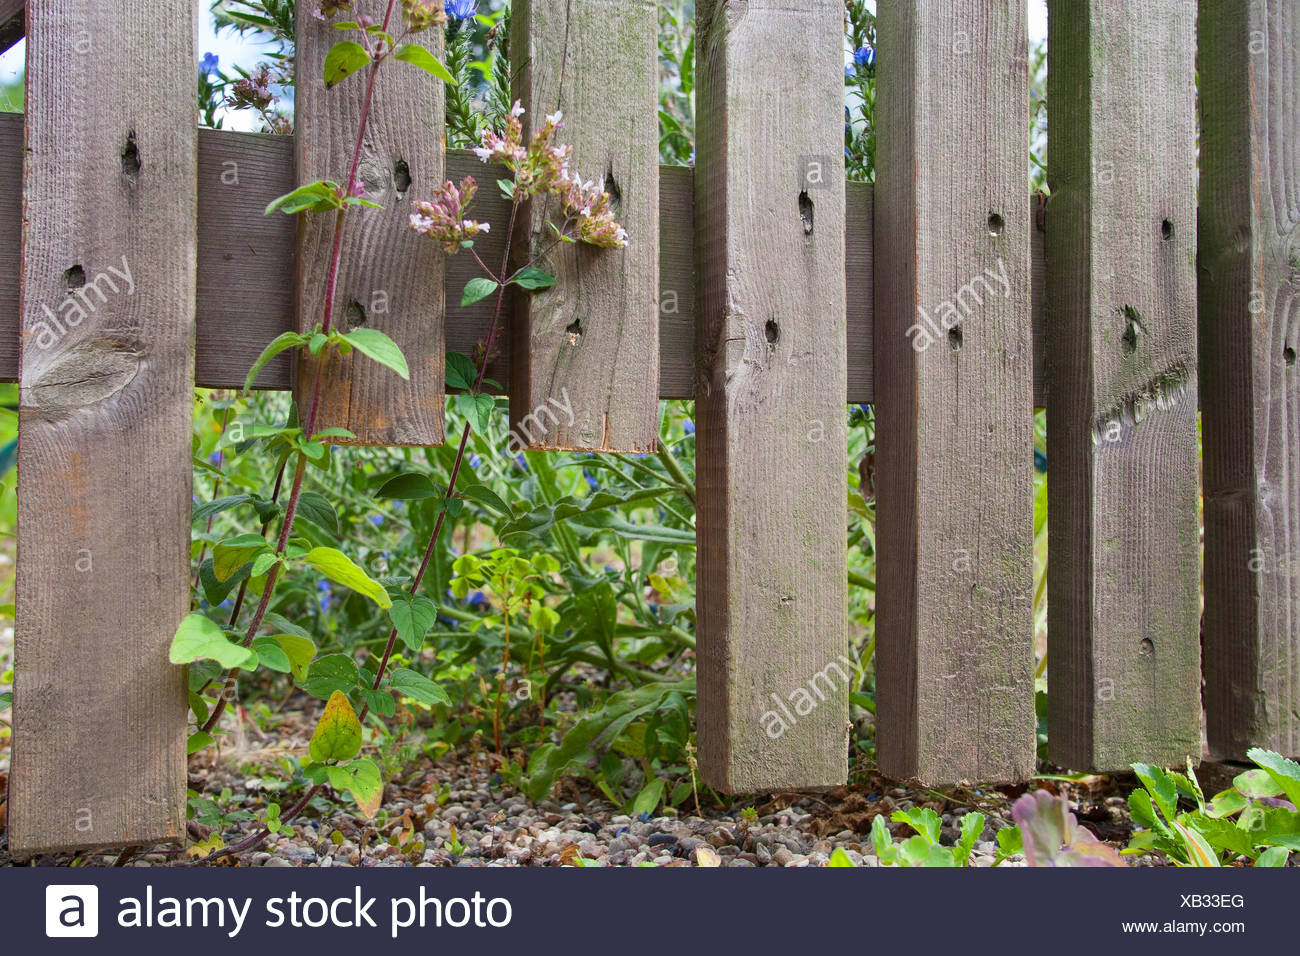 fence with opening to hedgehogs, Germany - Stock Image